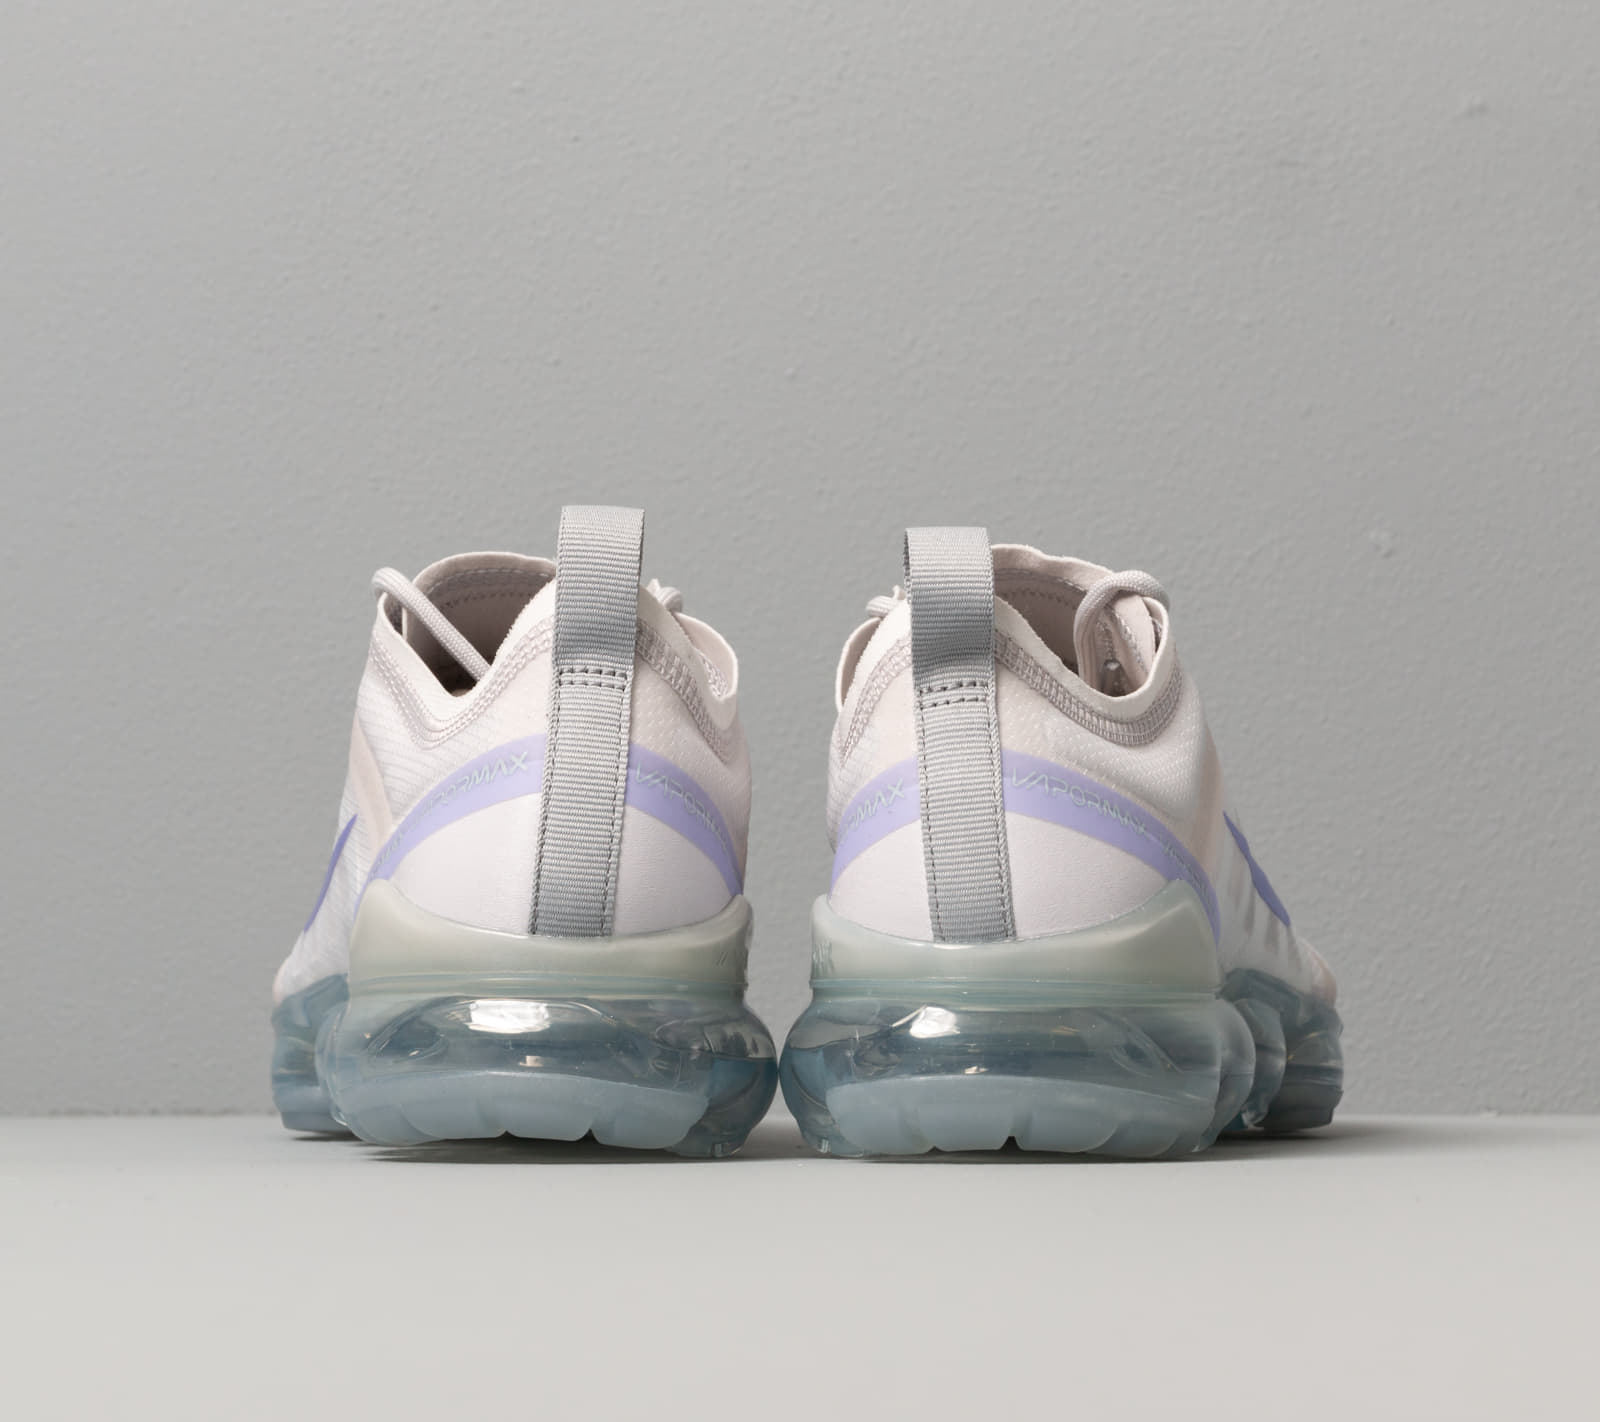 Nike Wmns Air Vapormax 2019 Se Vast Grey/ Purple Agate-Wolf Grey, Gray